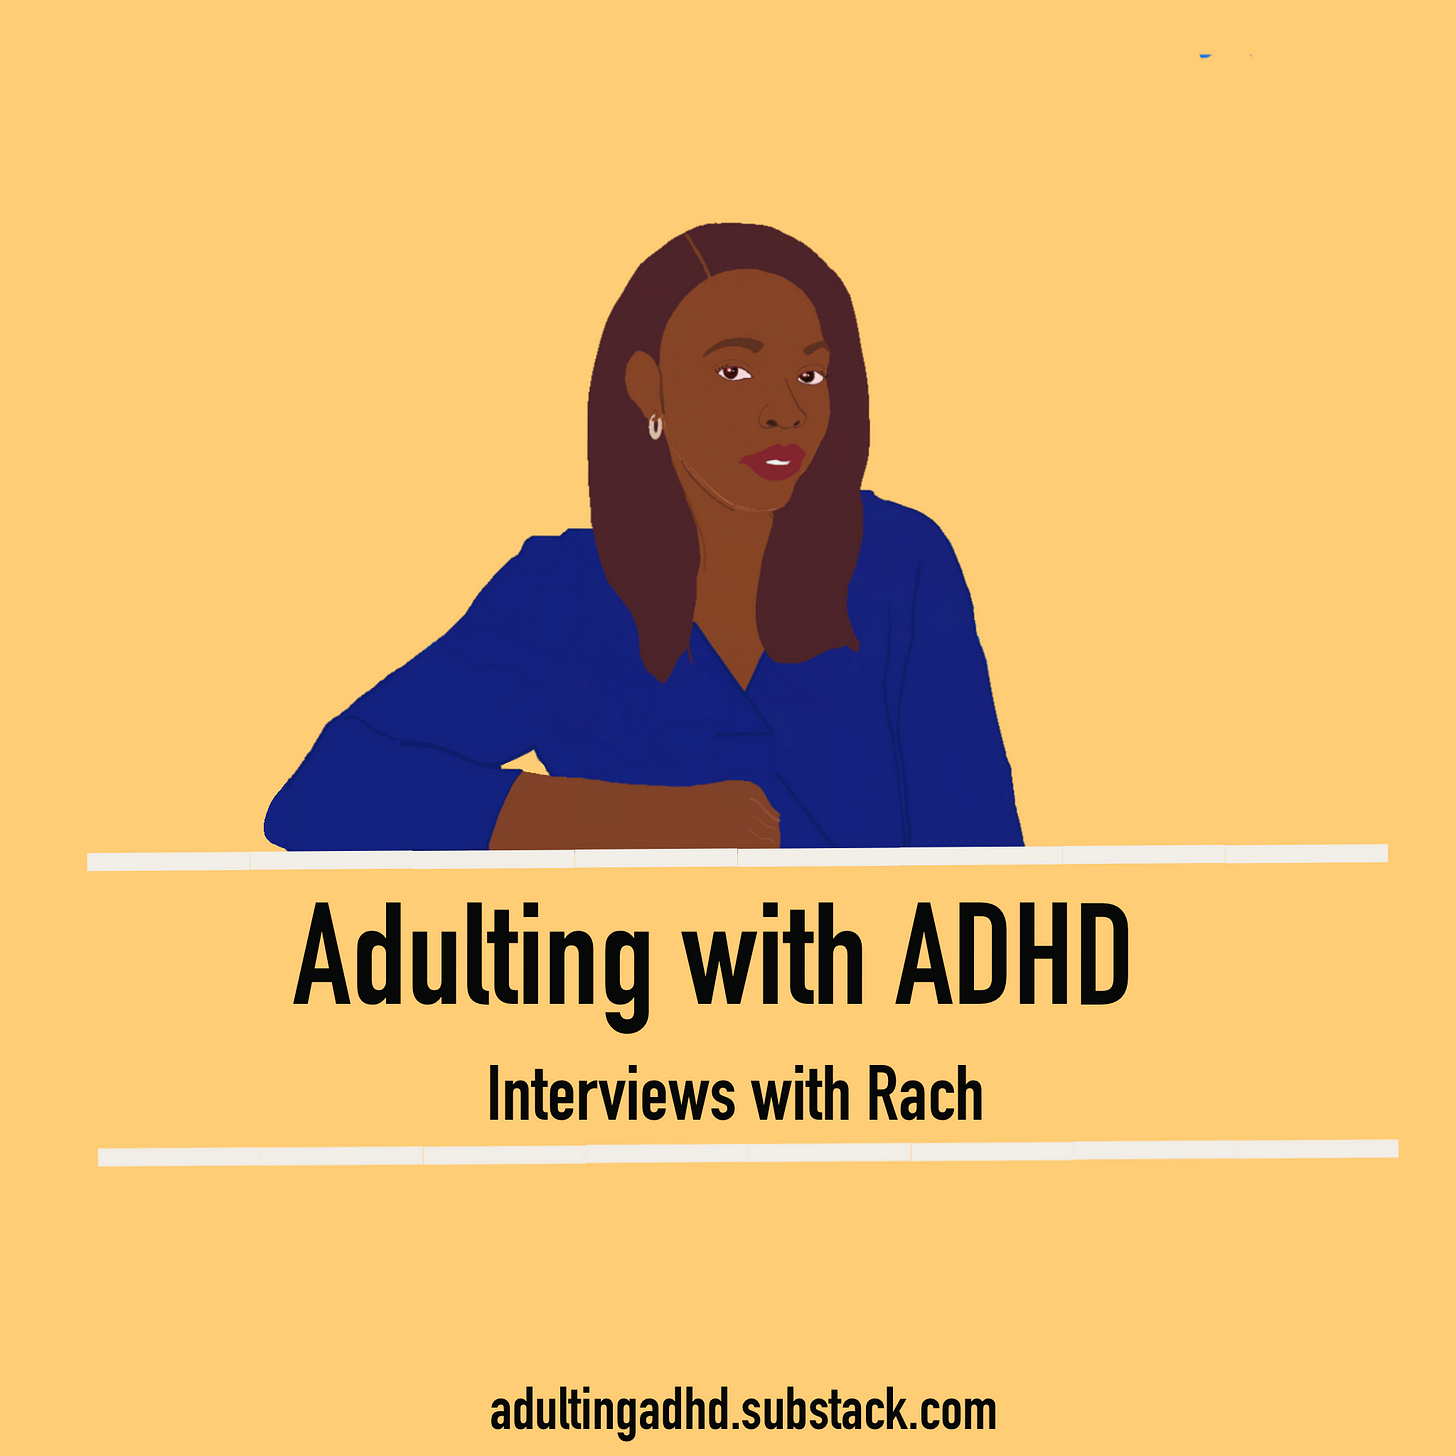 A medium shot picture of myself wearing a dark blue shirt. Beneath my photo, the text reads 'Adulting with ADHD, interviews with Rach'. At the bottom of the photo, the text says. adultingadhd.substack.com